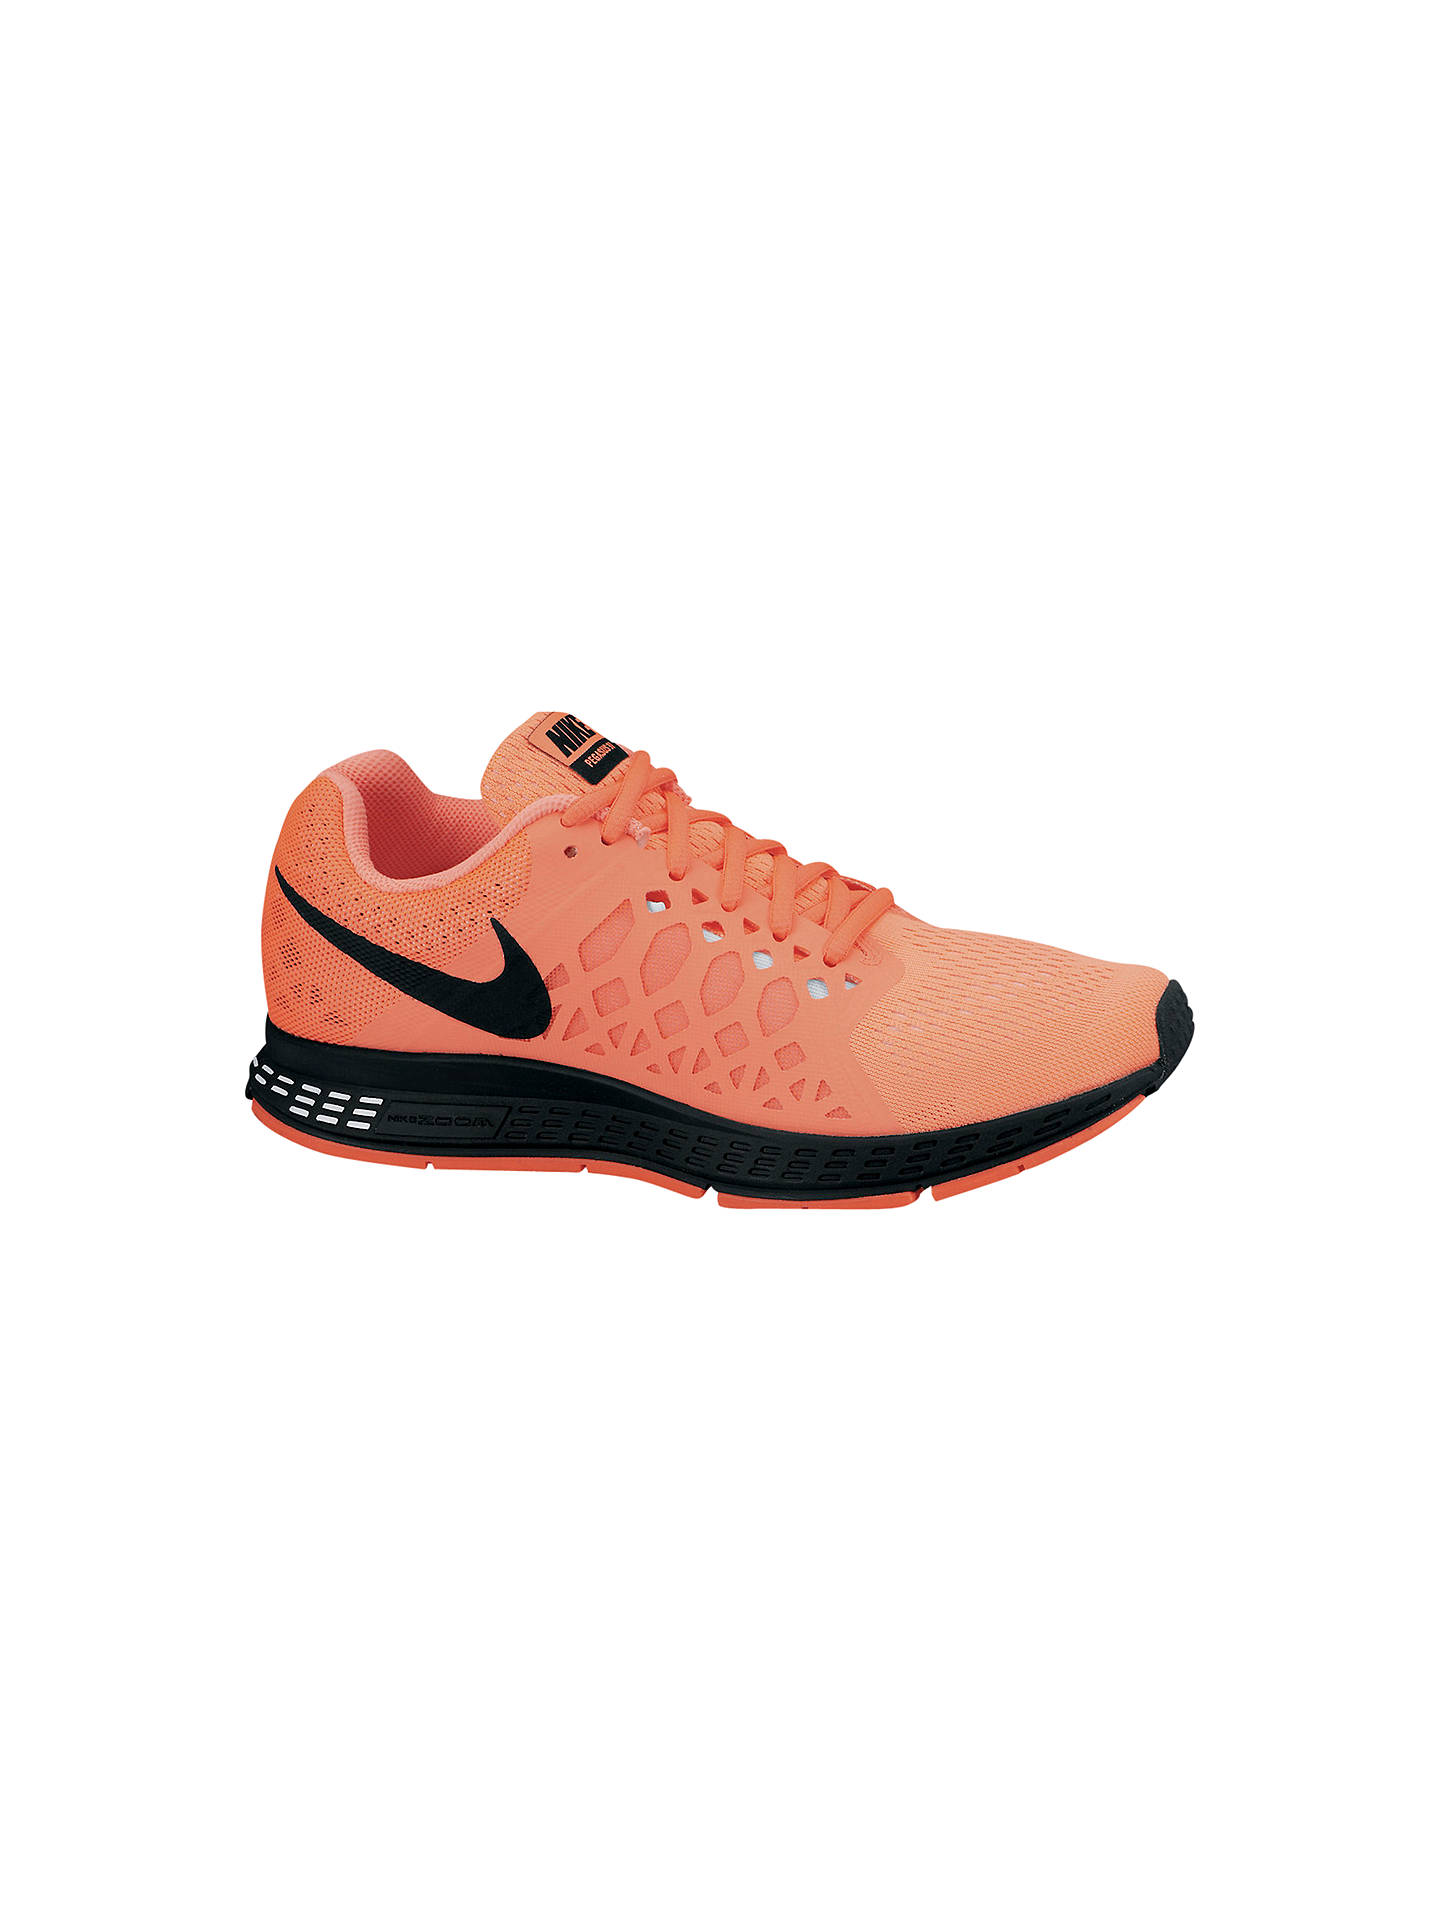 Nike Women s Air Zoom Pegasus 31 Running Shoes at John Lewis   Partners 596a2cdebf